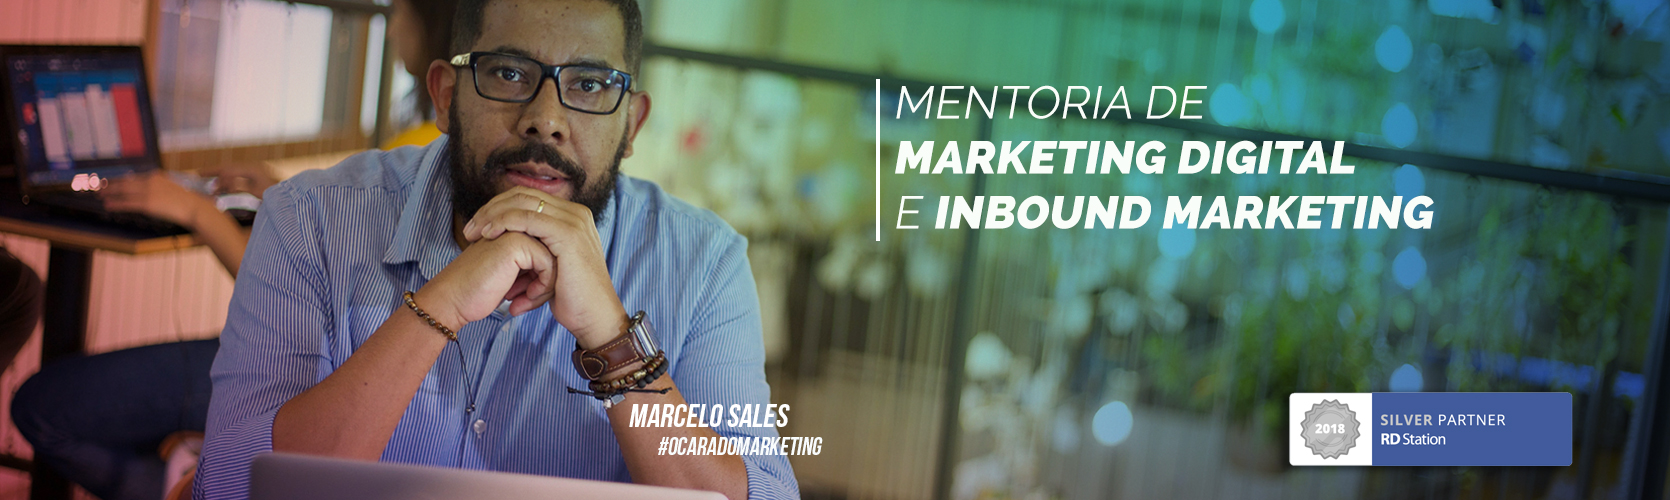 marcelo-sales-o-cara-do-marketing-1